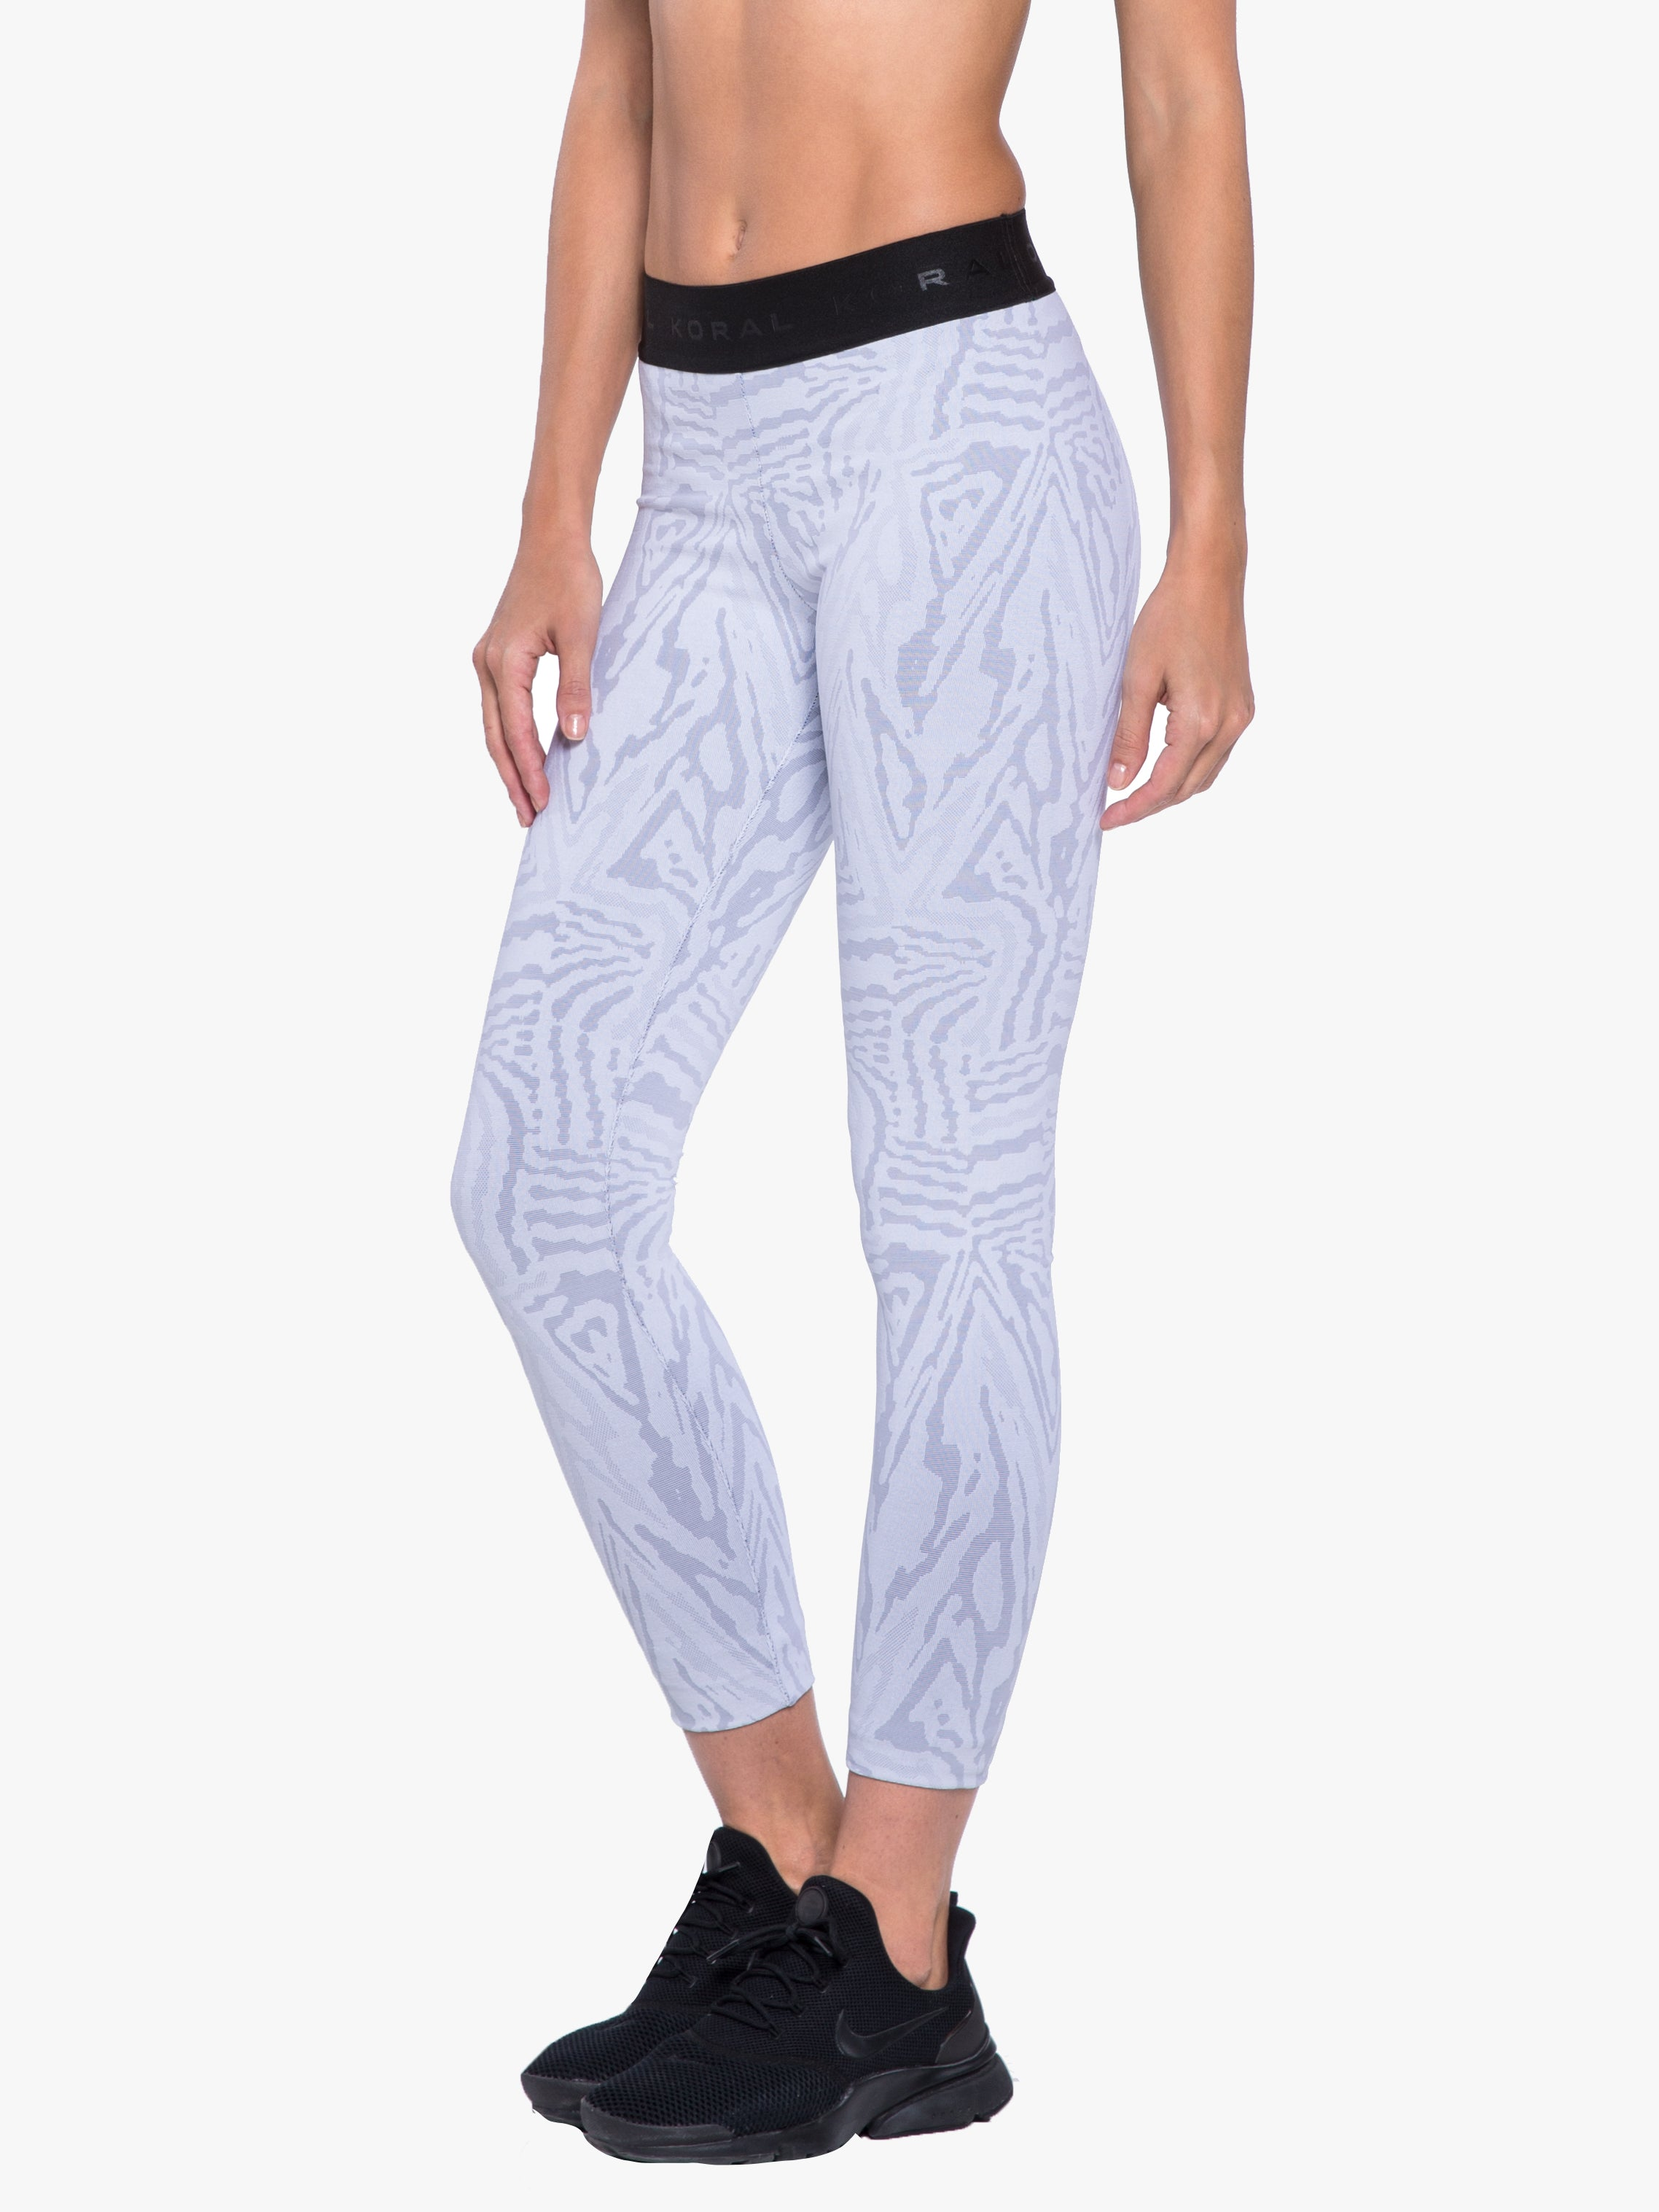 Knockout Jacquard Legging - White Galaxy